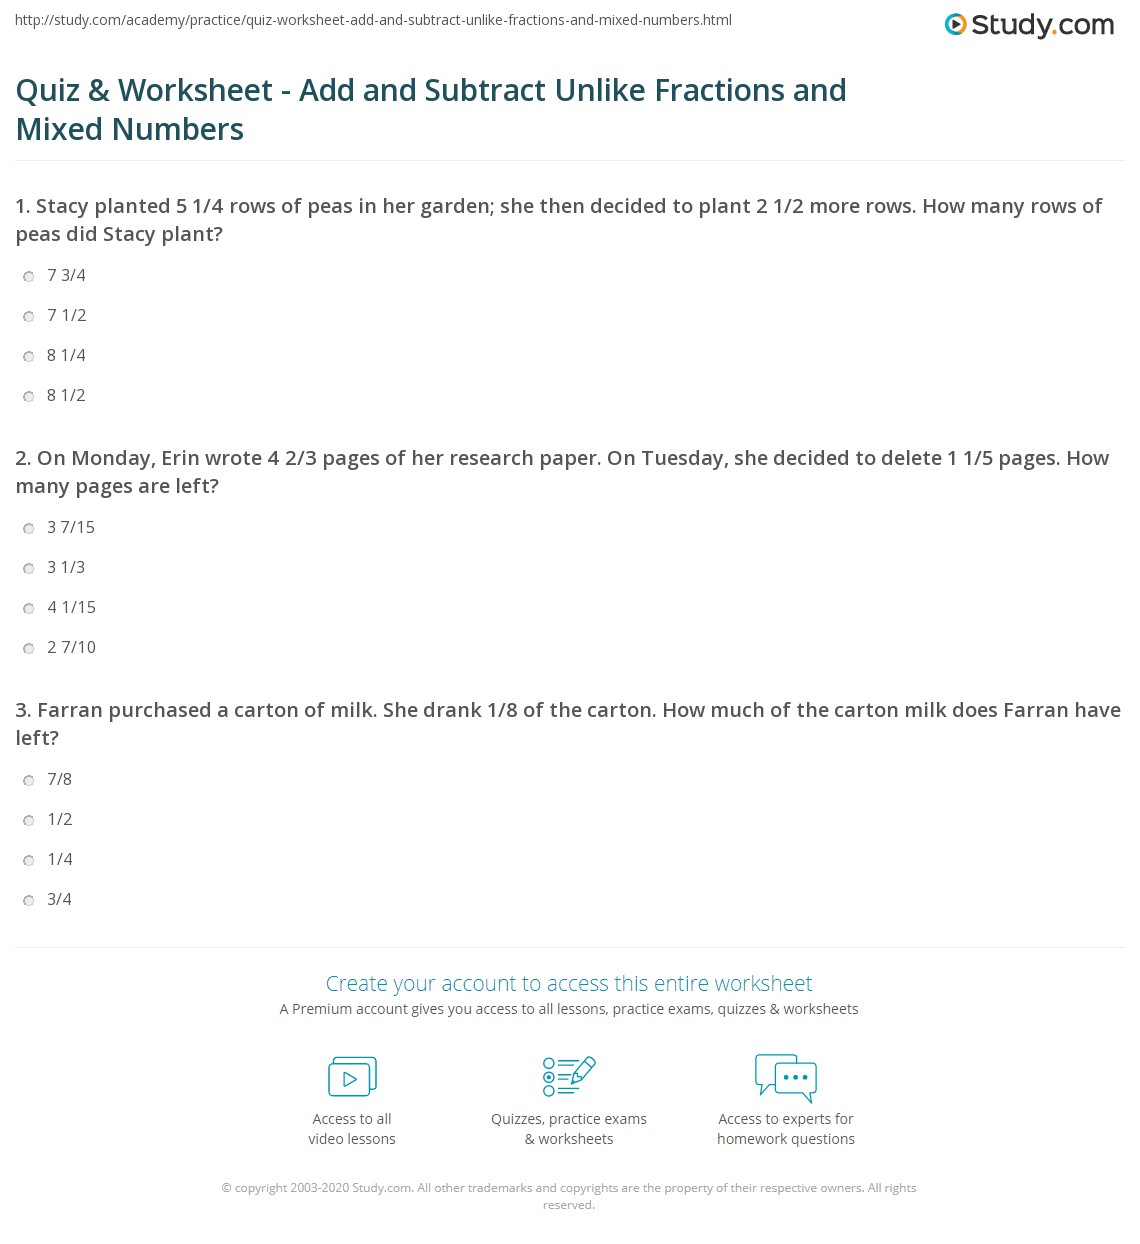 math worksheet : quiz  worksheet  add and subtract unlike fractions and mixed  : Subtracting Mixed Numbers Worksheets